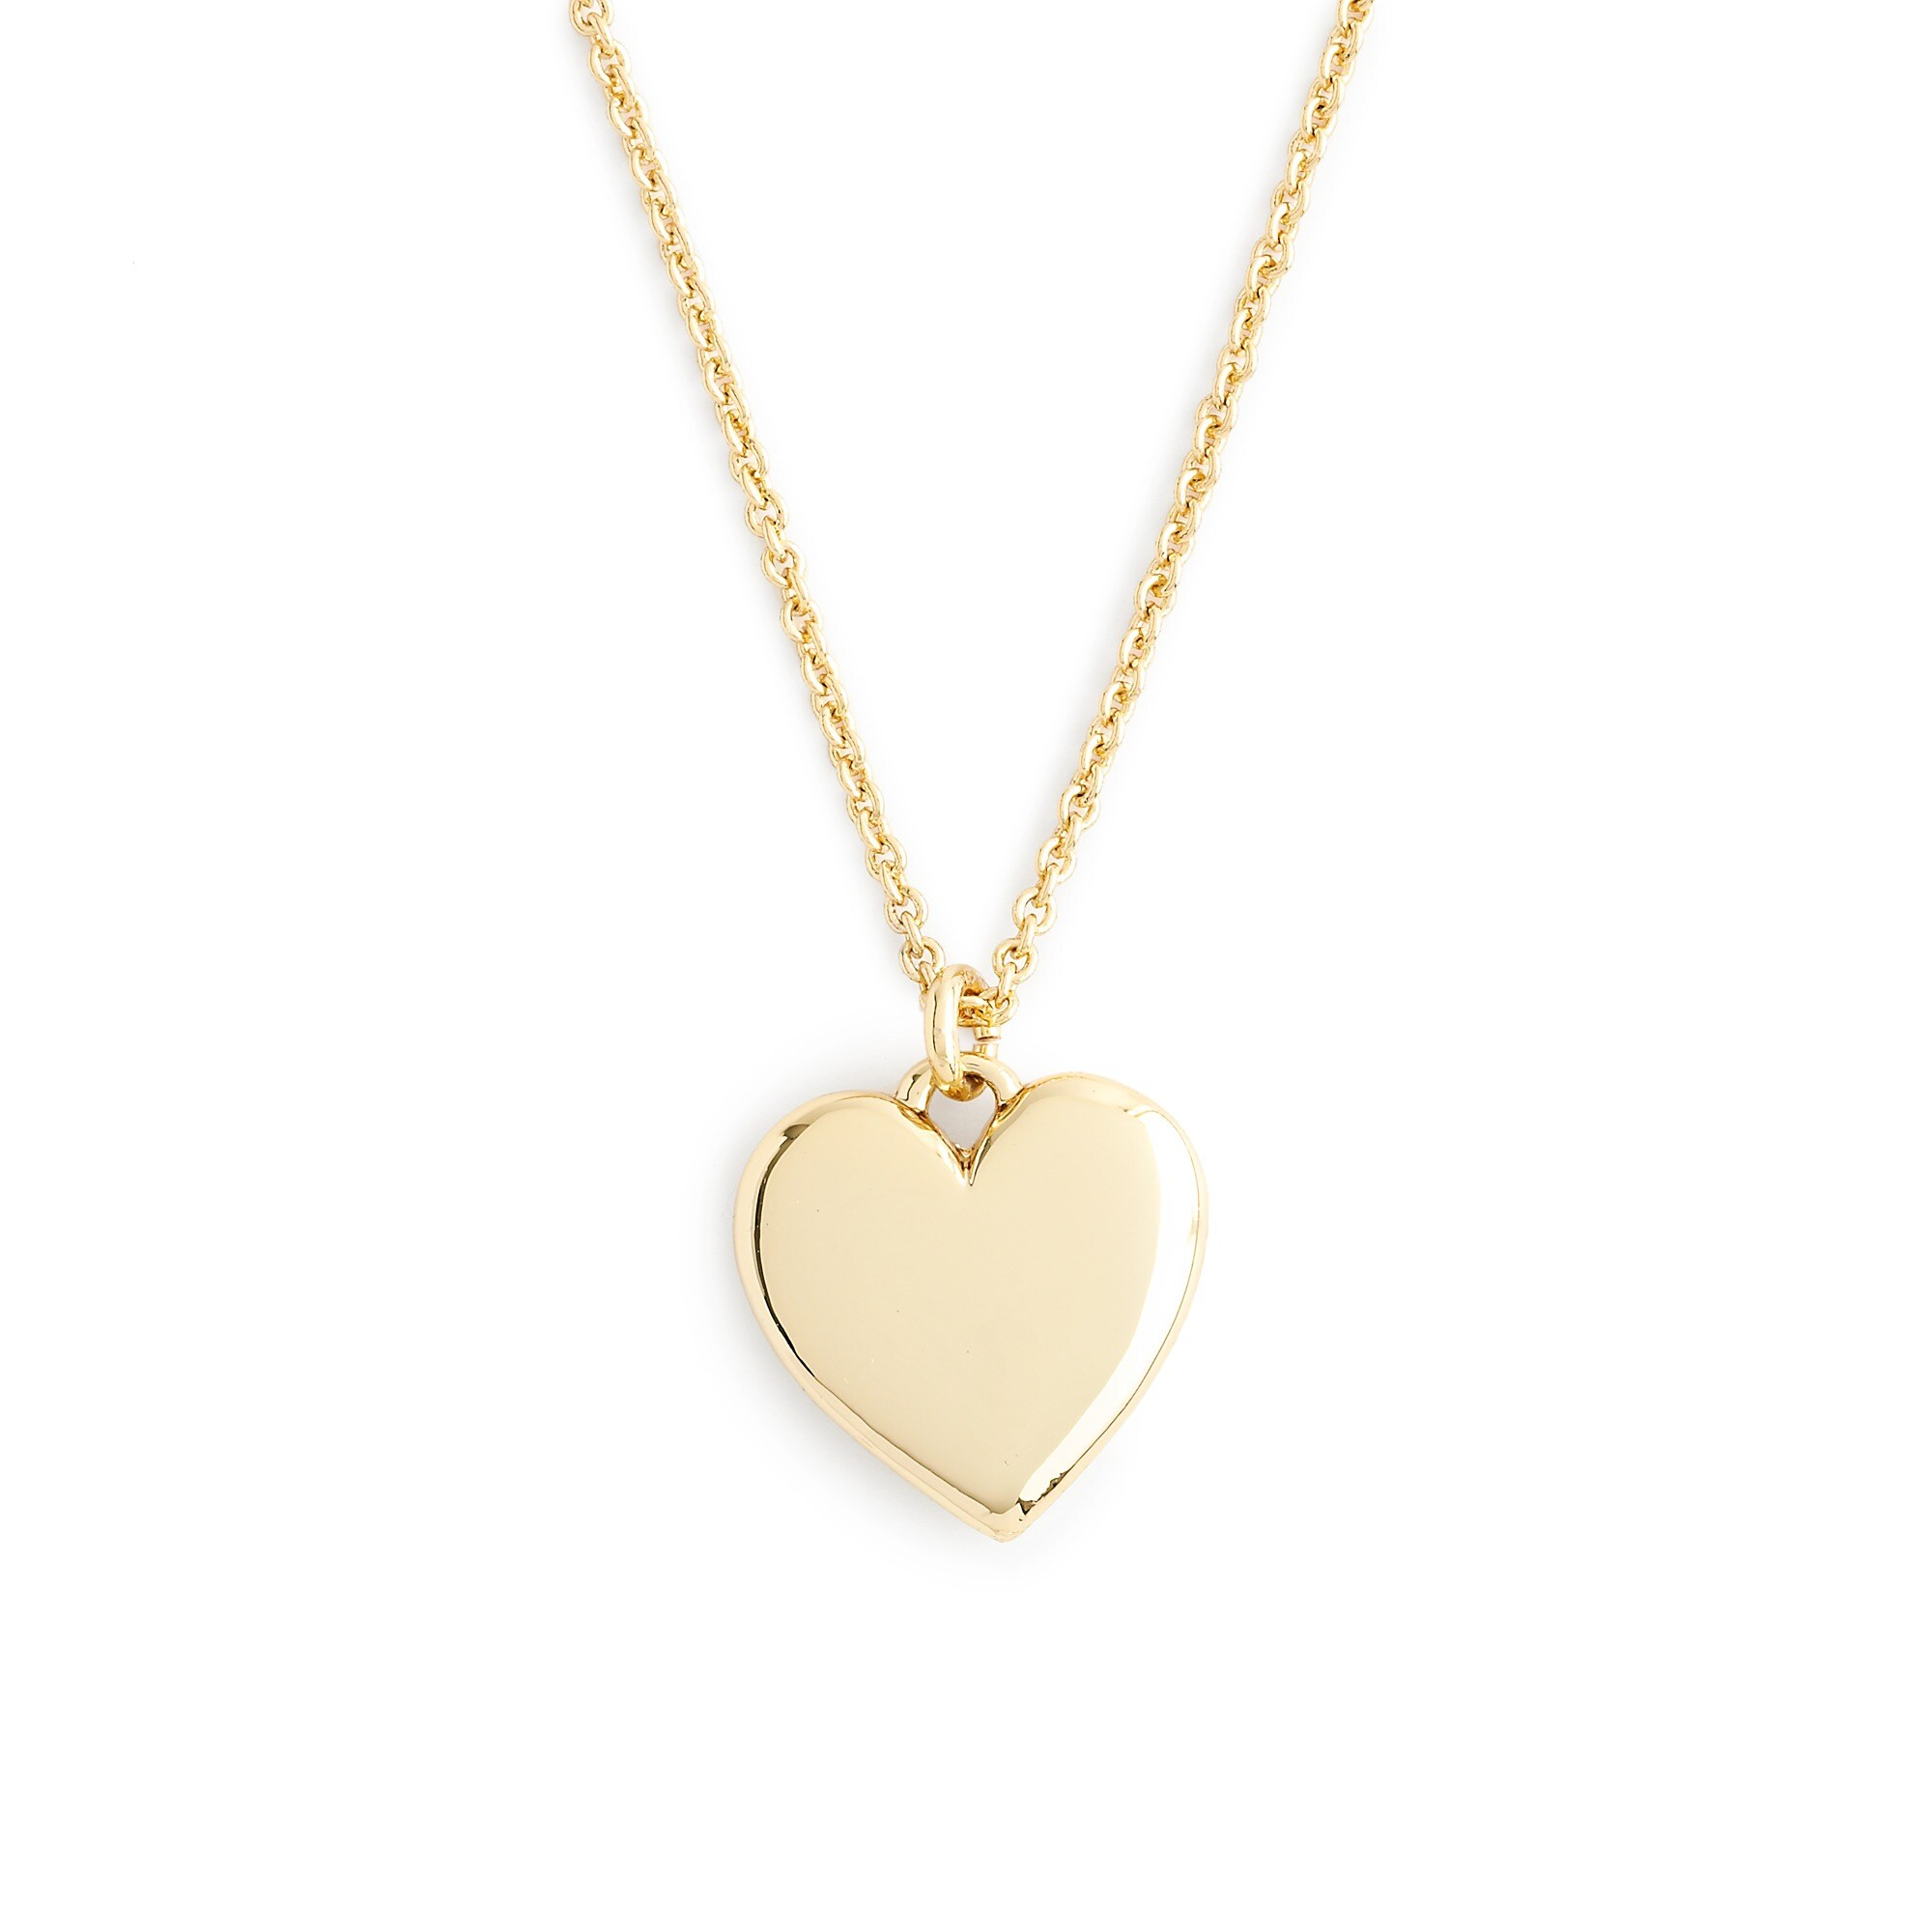 """14k gold heart charm necklace with 18 1/2"""" chain : women's necklaces"""